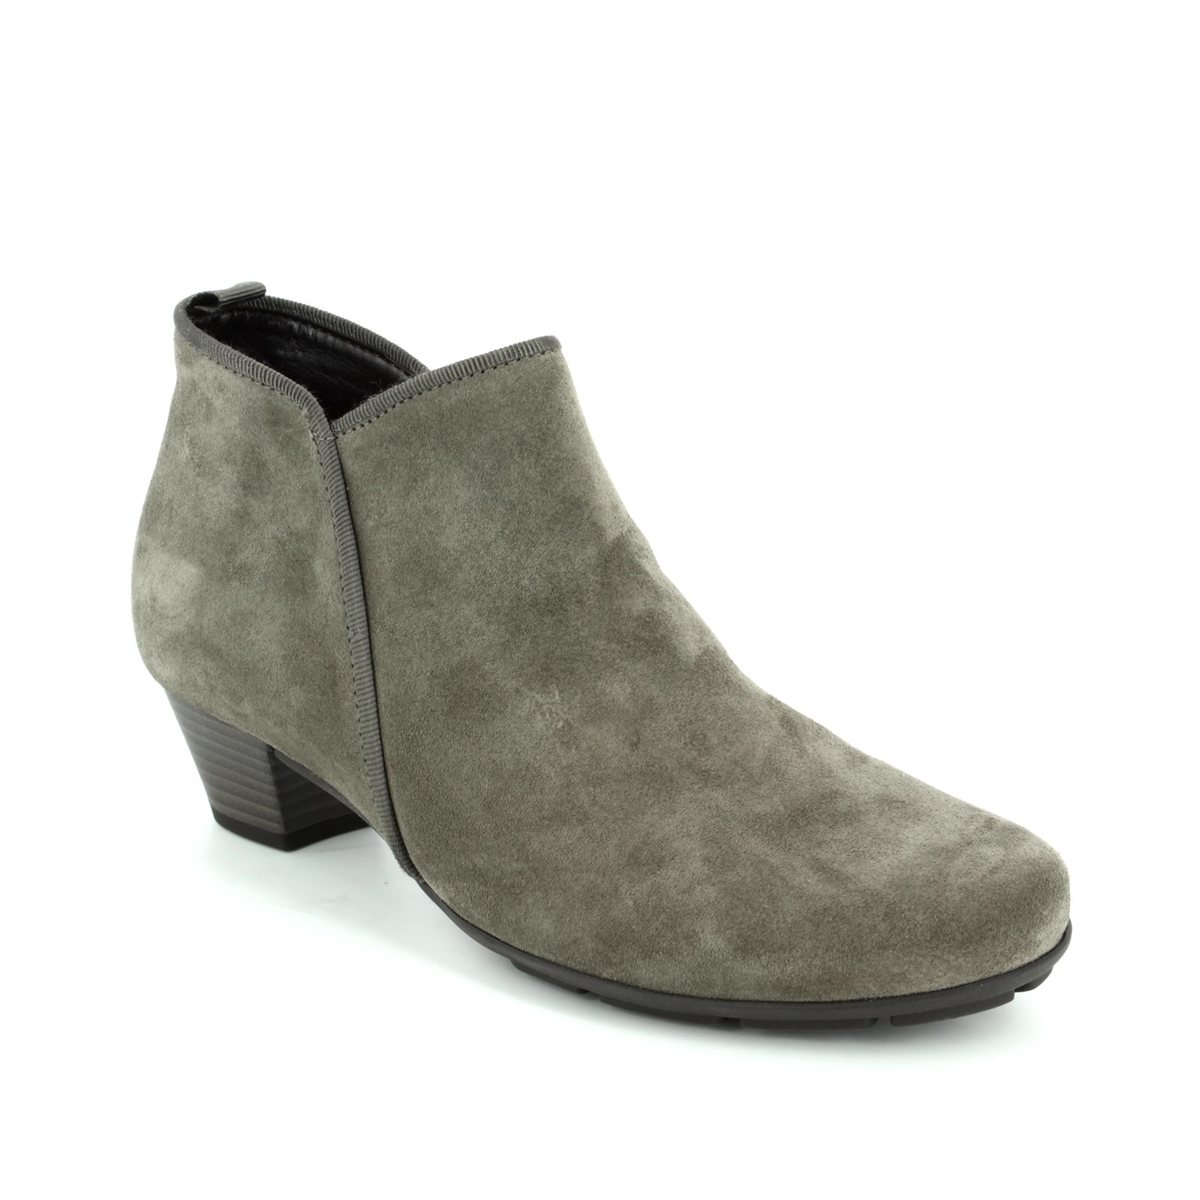 538c9d71ac82 Gabor Ankle Boots - Taupe suede - 75.633.13 TRUDY